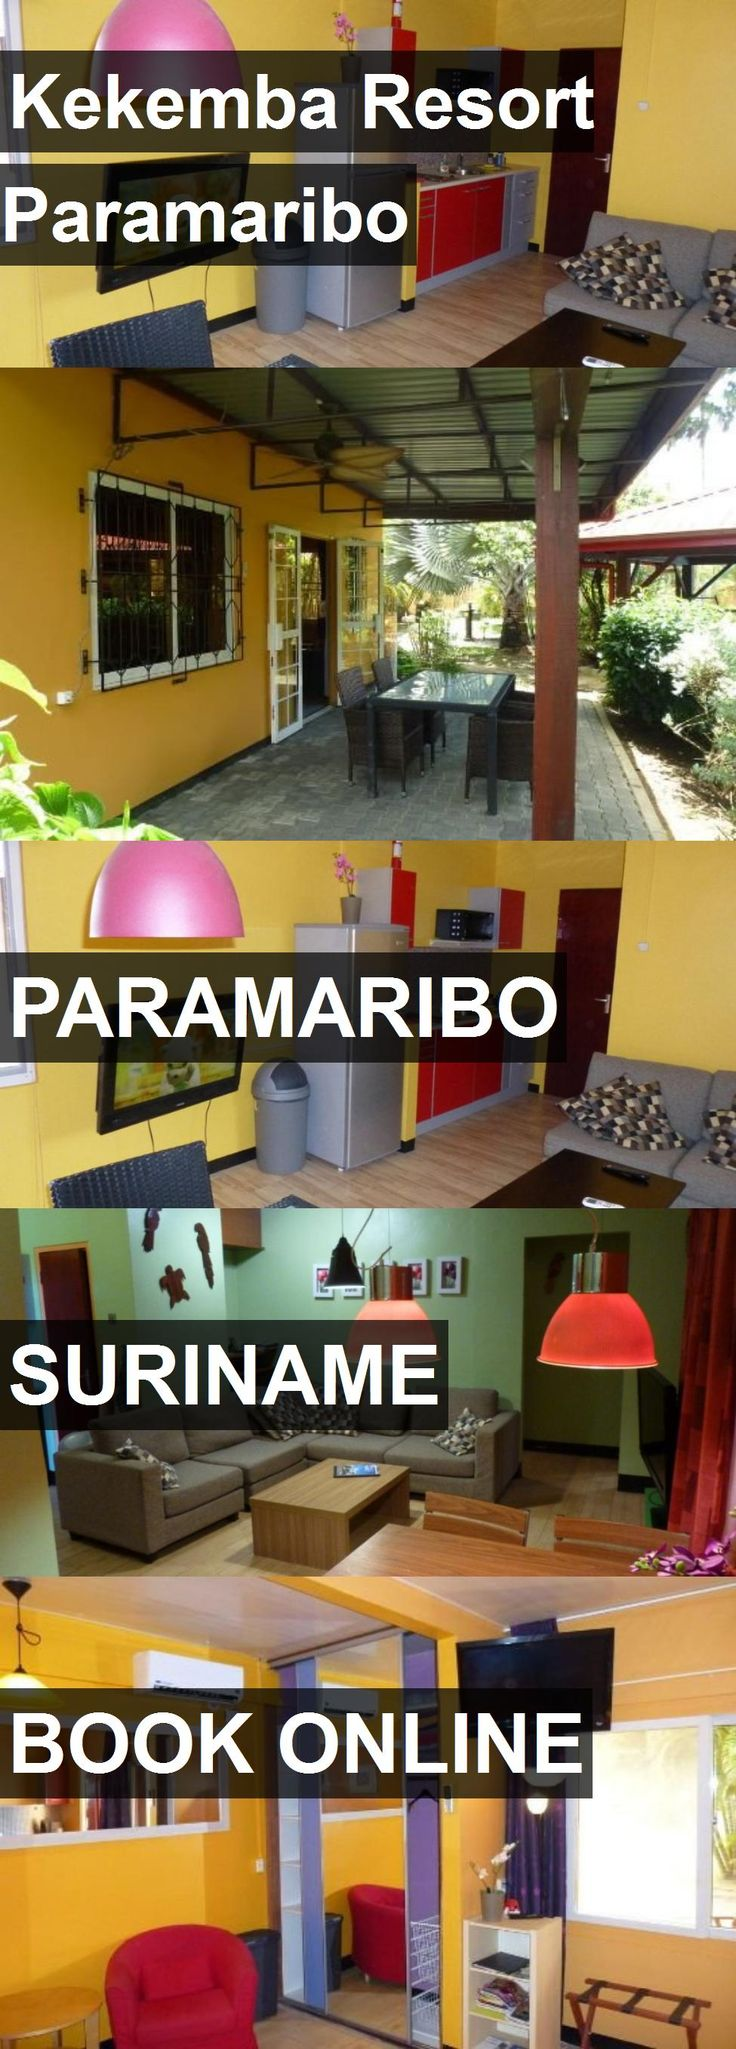 Hotel Kekemba Resort Paramaribo in Paramaribo, Suriname. For more information, photos, reviews and best prices please follow the link. #Suriname #Paramaribo #KekembaResortParamaribo #hotel #travel #vacation